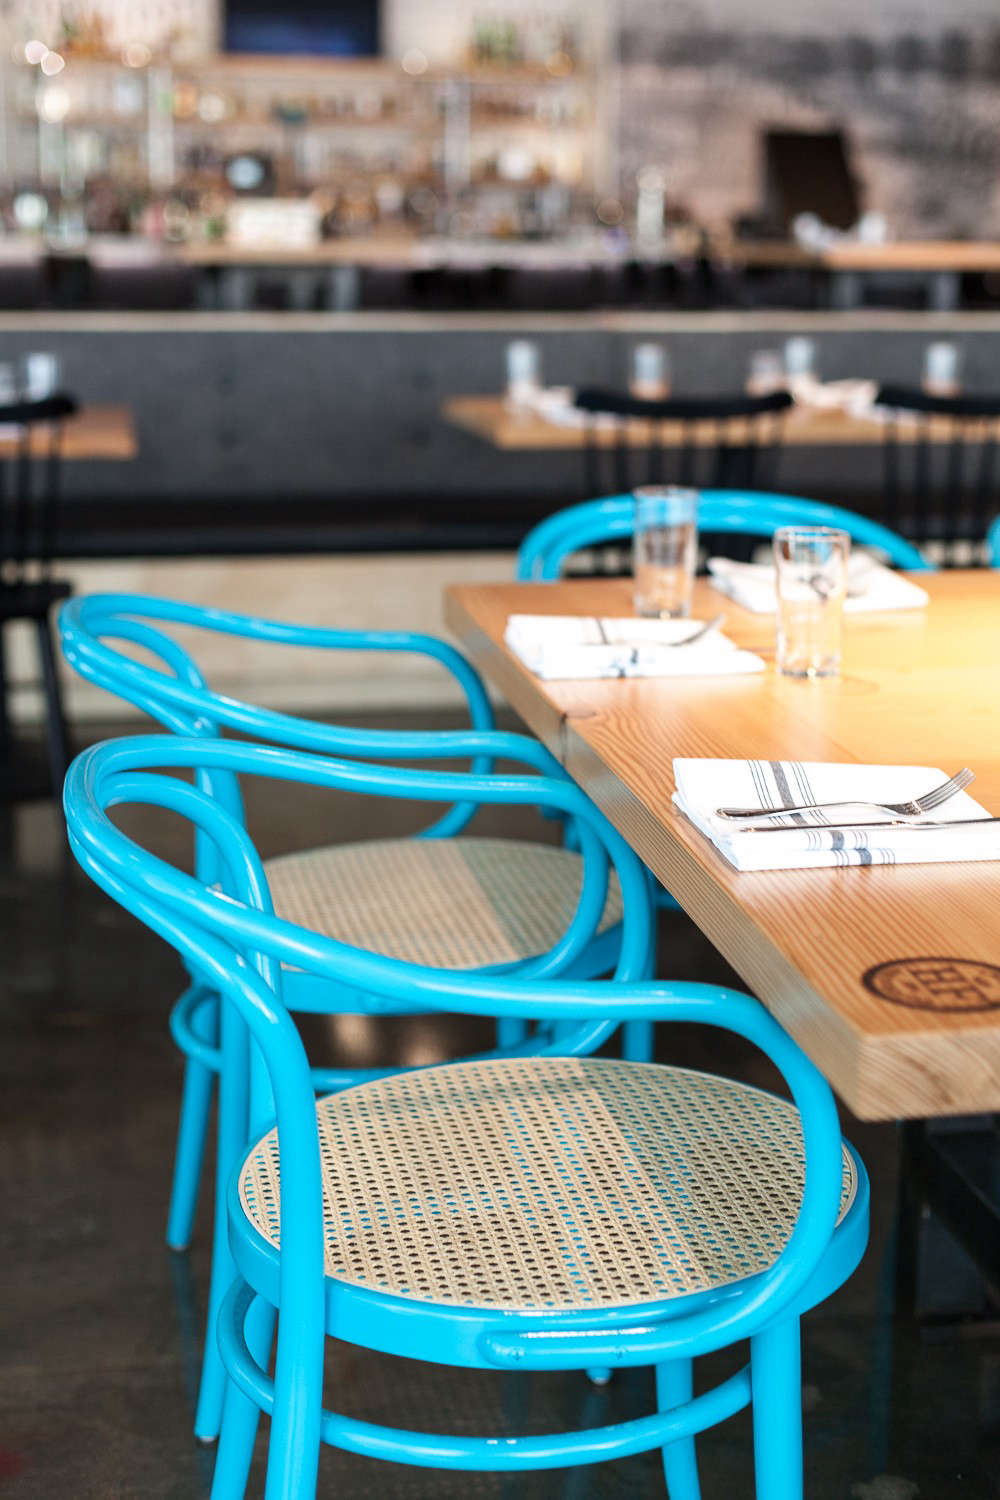 Hock Farm Restaurant with Turquoise Bentwood Chairs